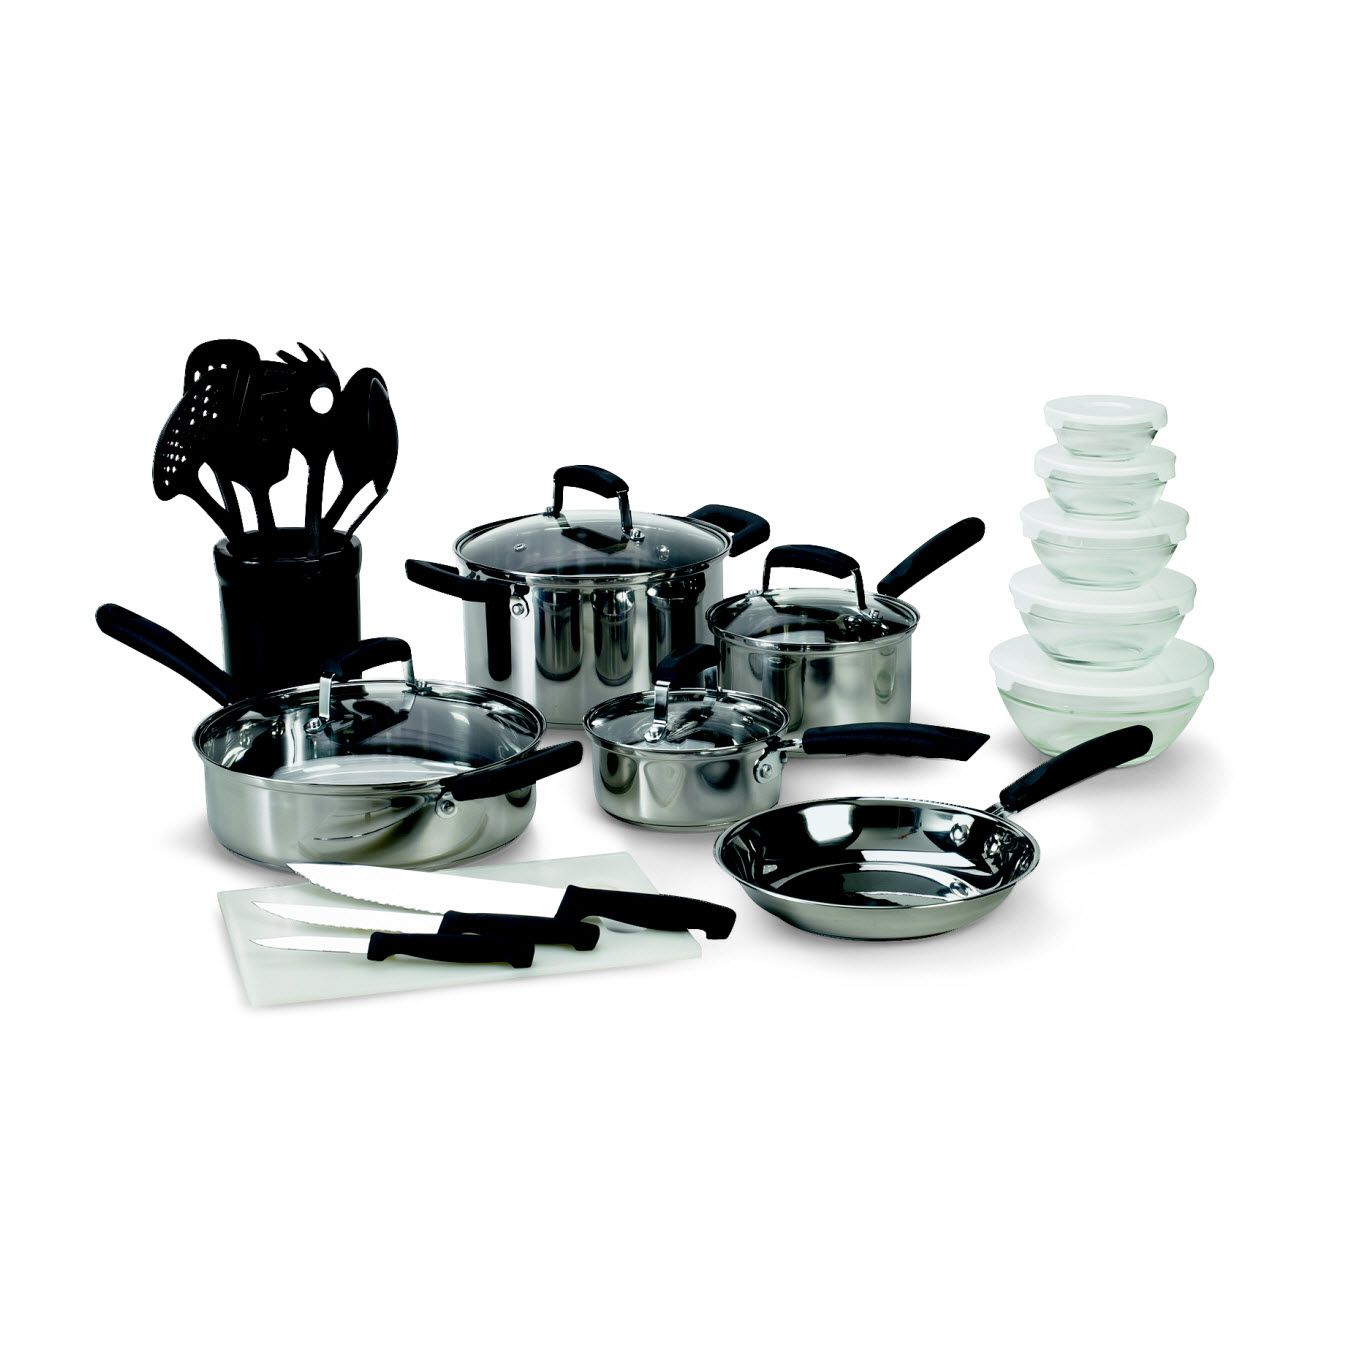 Basic Essentials 25 pc Stainless Steel Mega Set